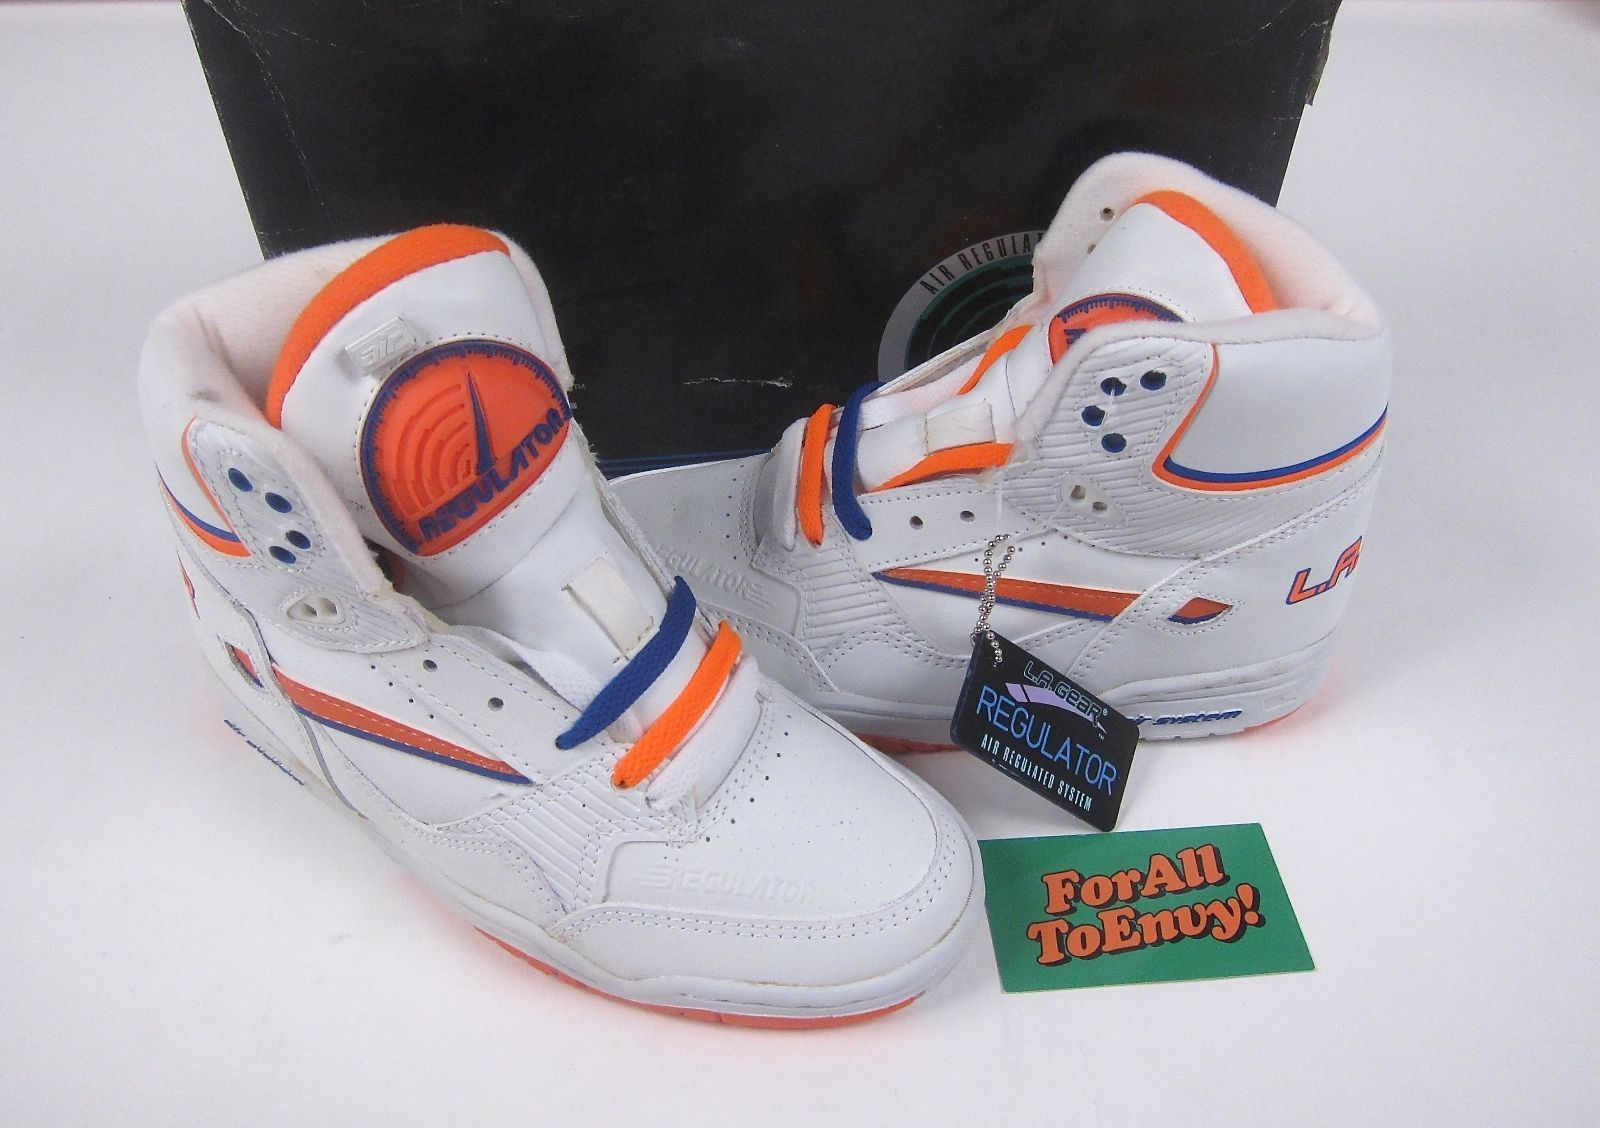 official photos f4378 89b10 Vintage La Gear Regulator Pump Womens Hi Top Sneakers 80s 90s Deadstock US  5 1 2  eBay